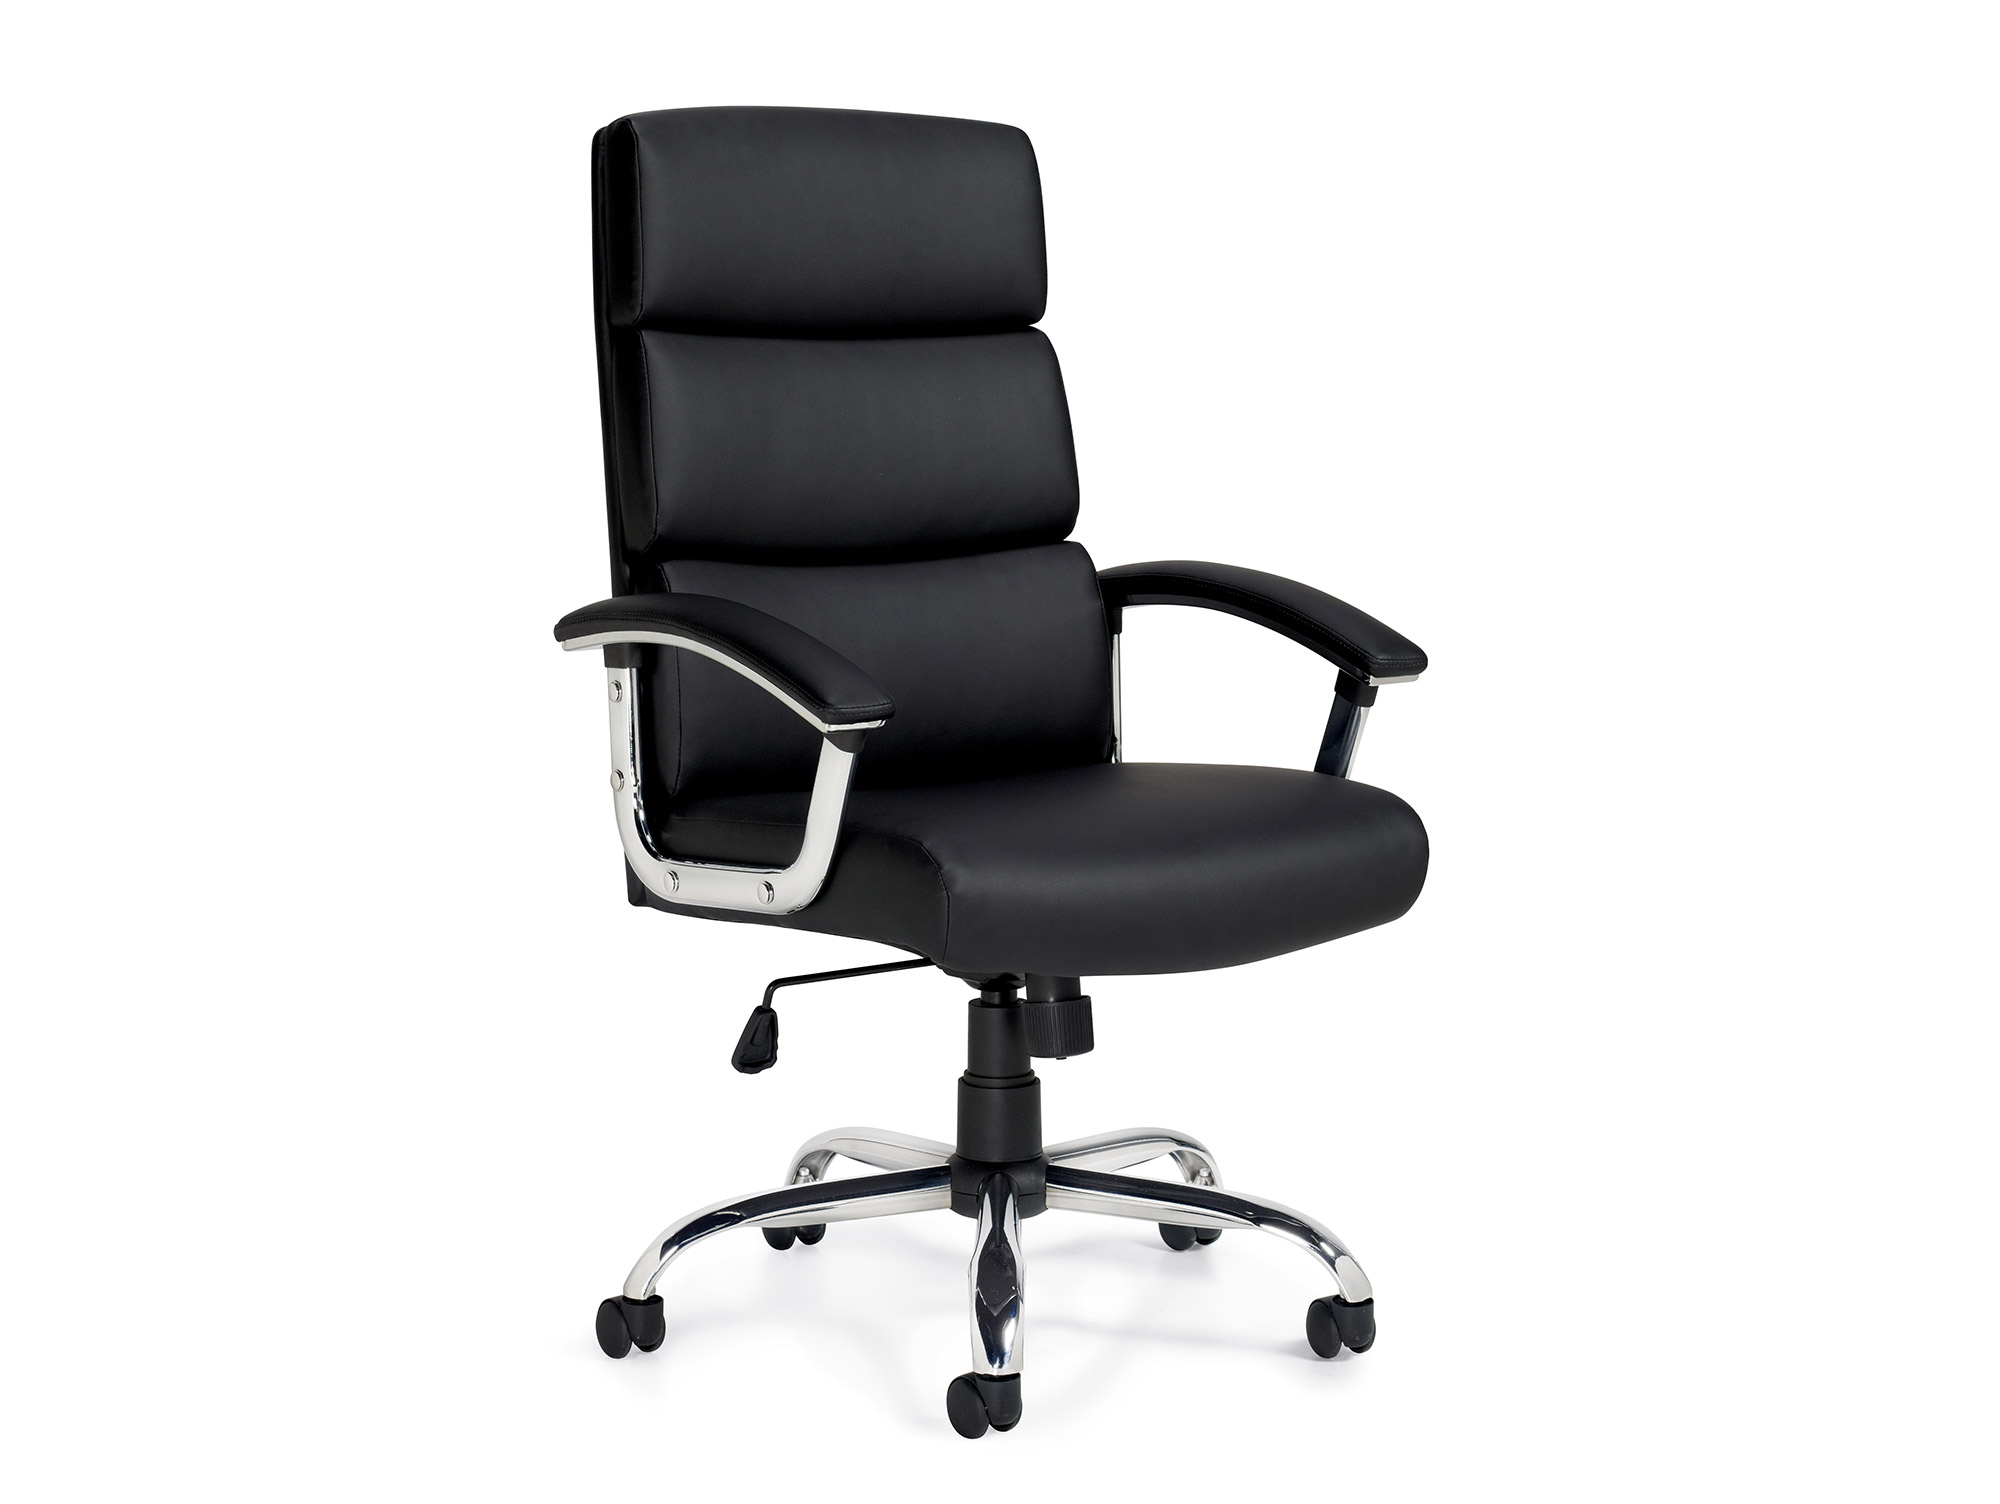 stylish office chairs - conference style seating - chairs for office